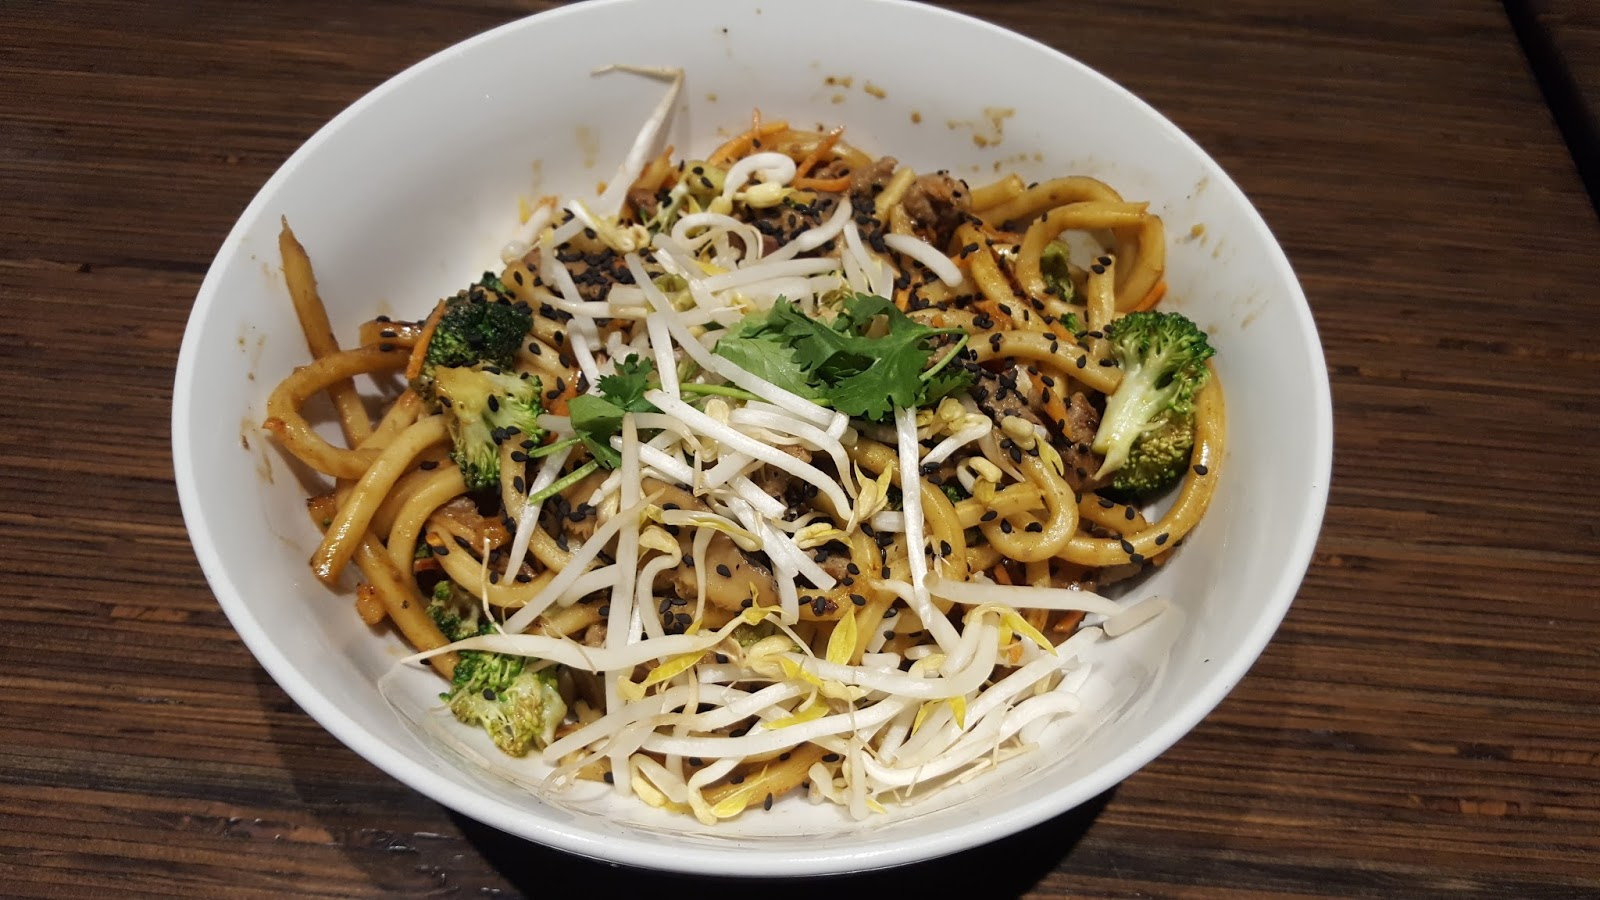 Noodles & Co Japanese pan noodles